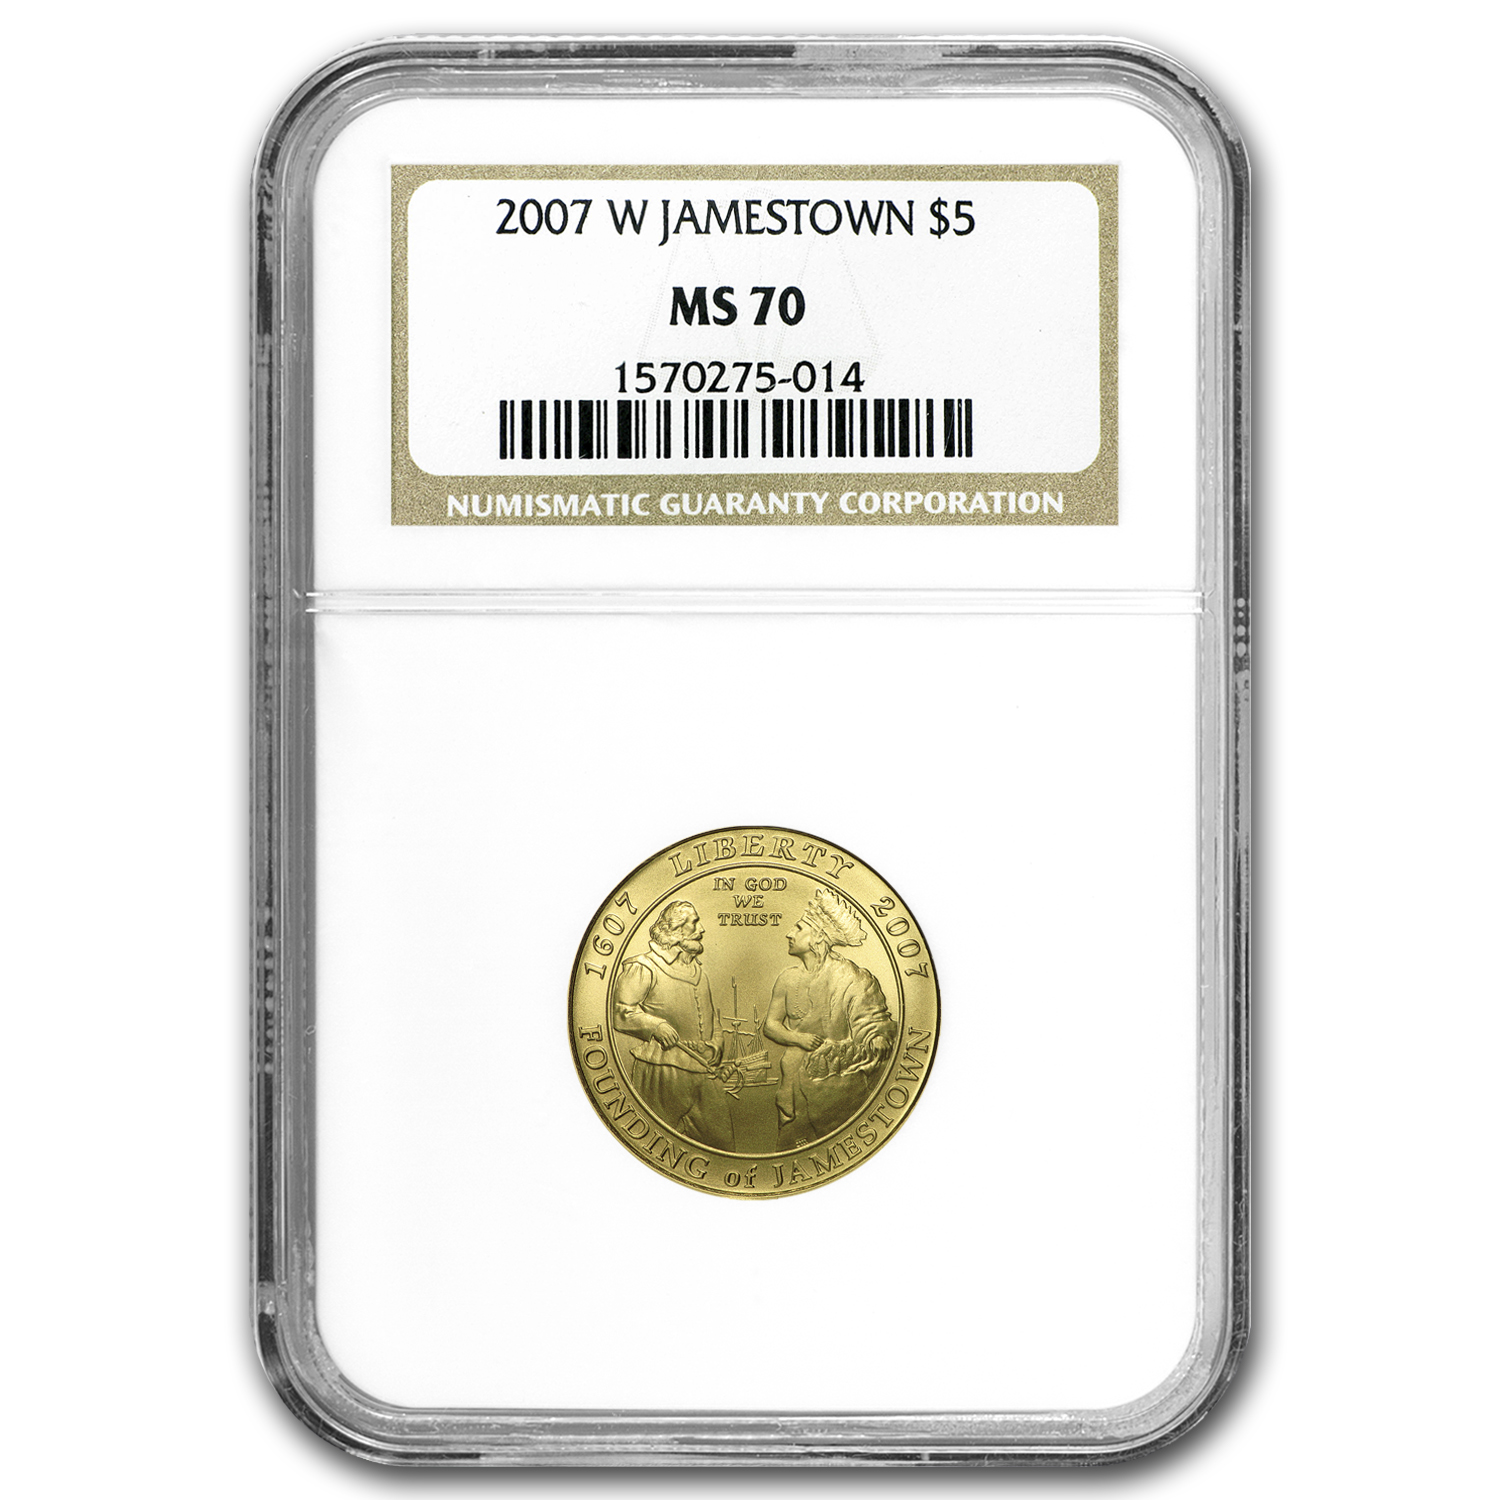 2007-W Gold $5 Commem Jamestown MS-70 NGC